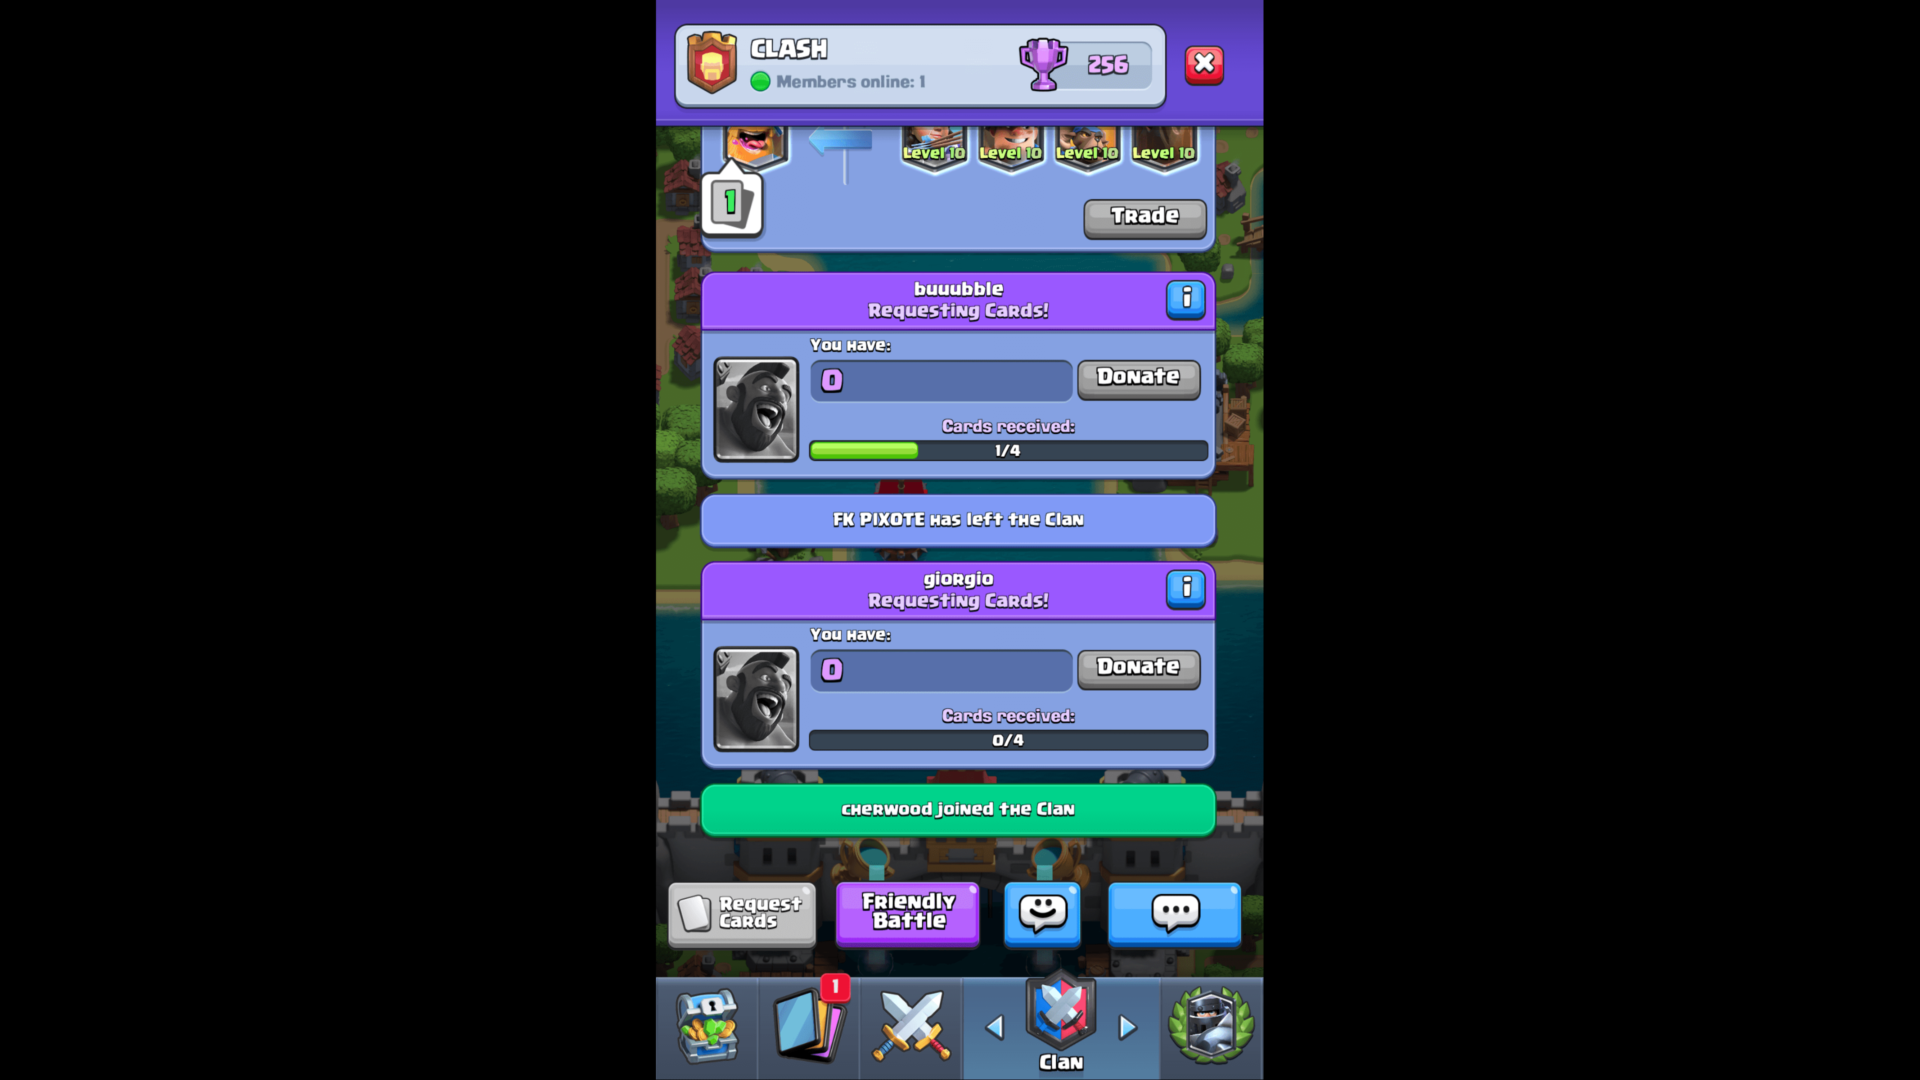 Clan summary screenshot of Clash Royale video game interface.